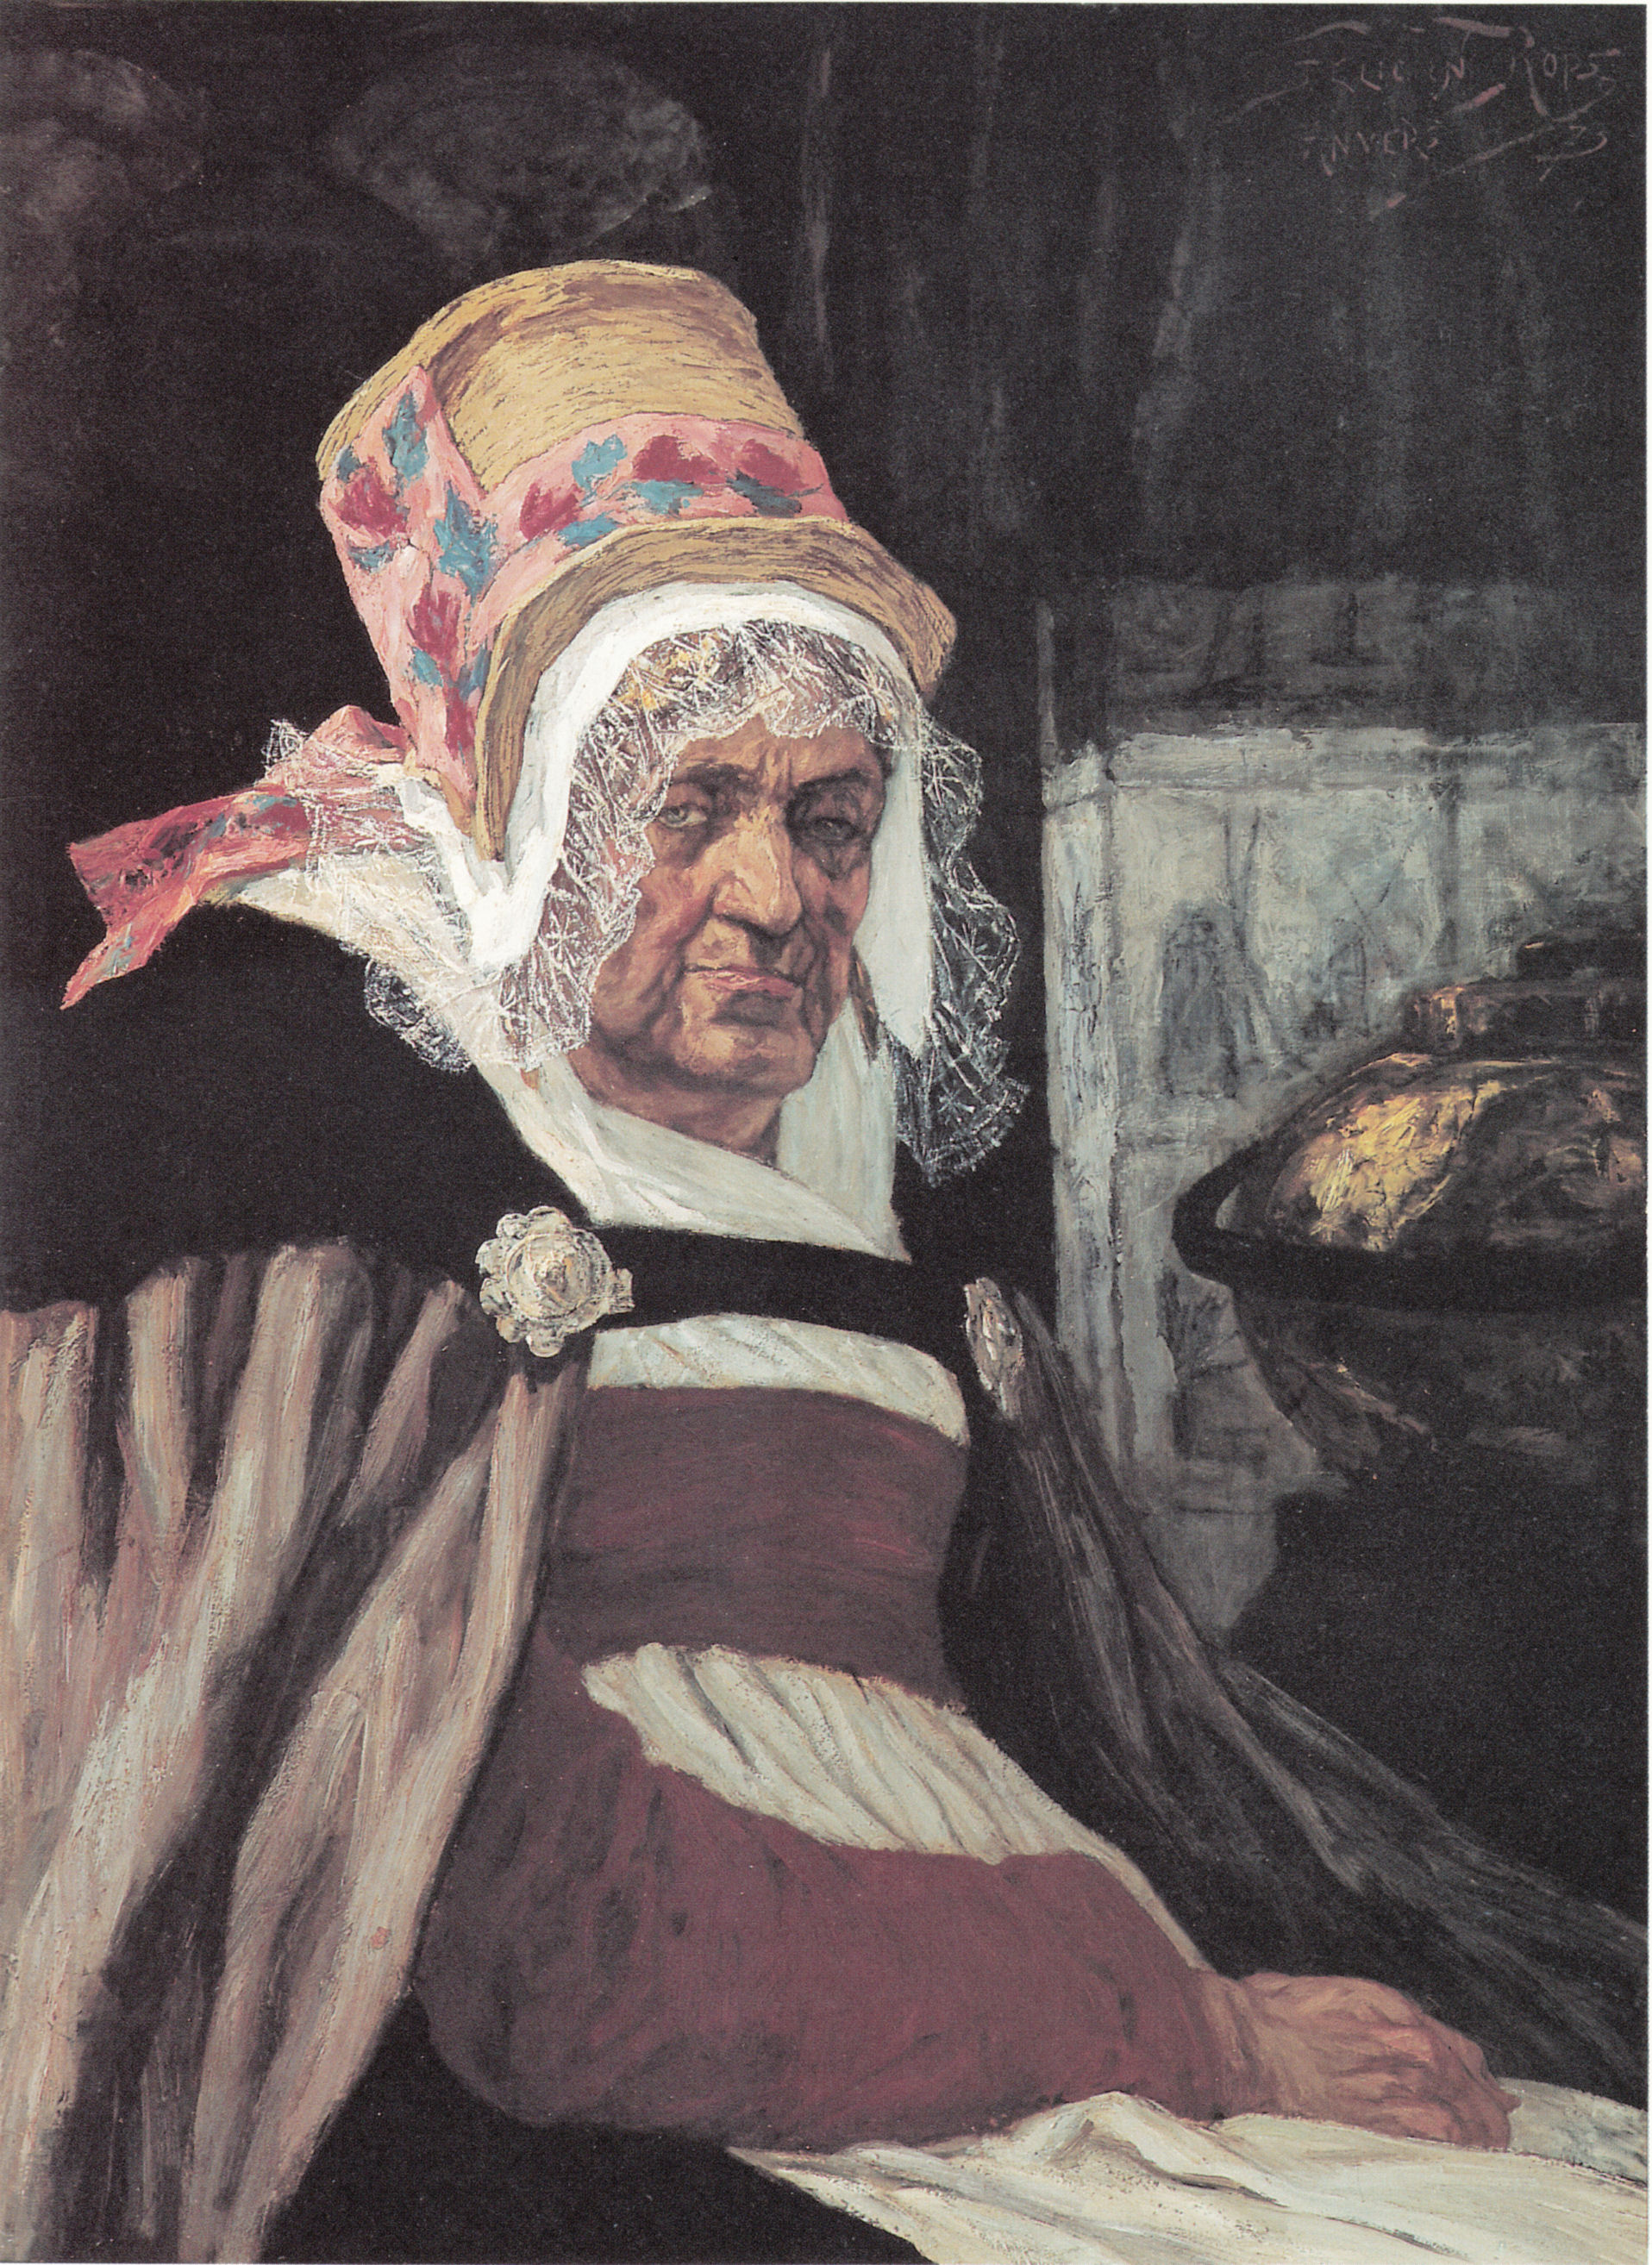 Head of old woman from Antwerp, 1873